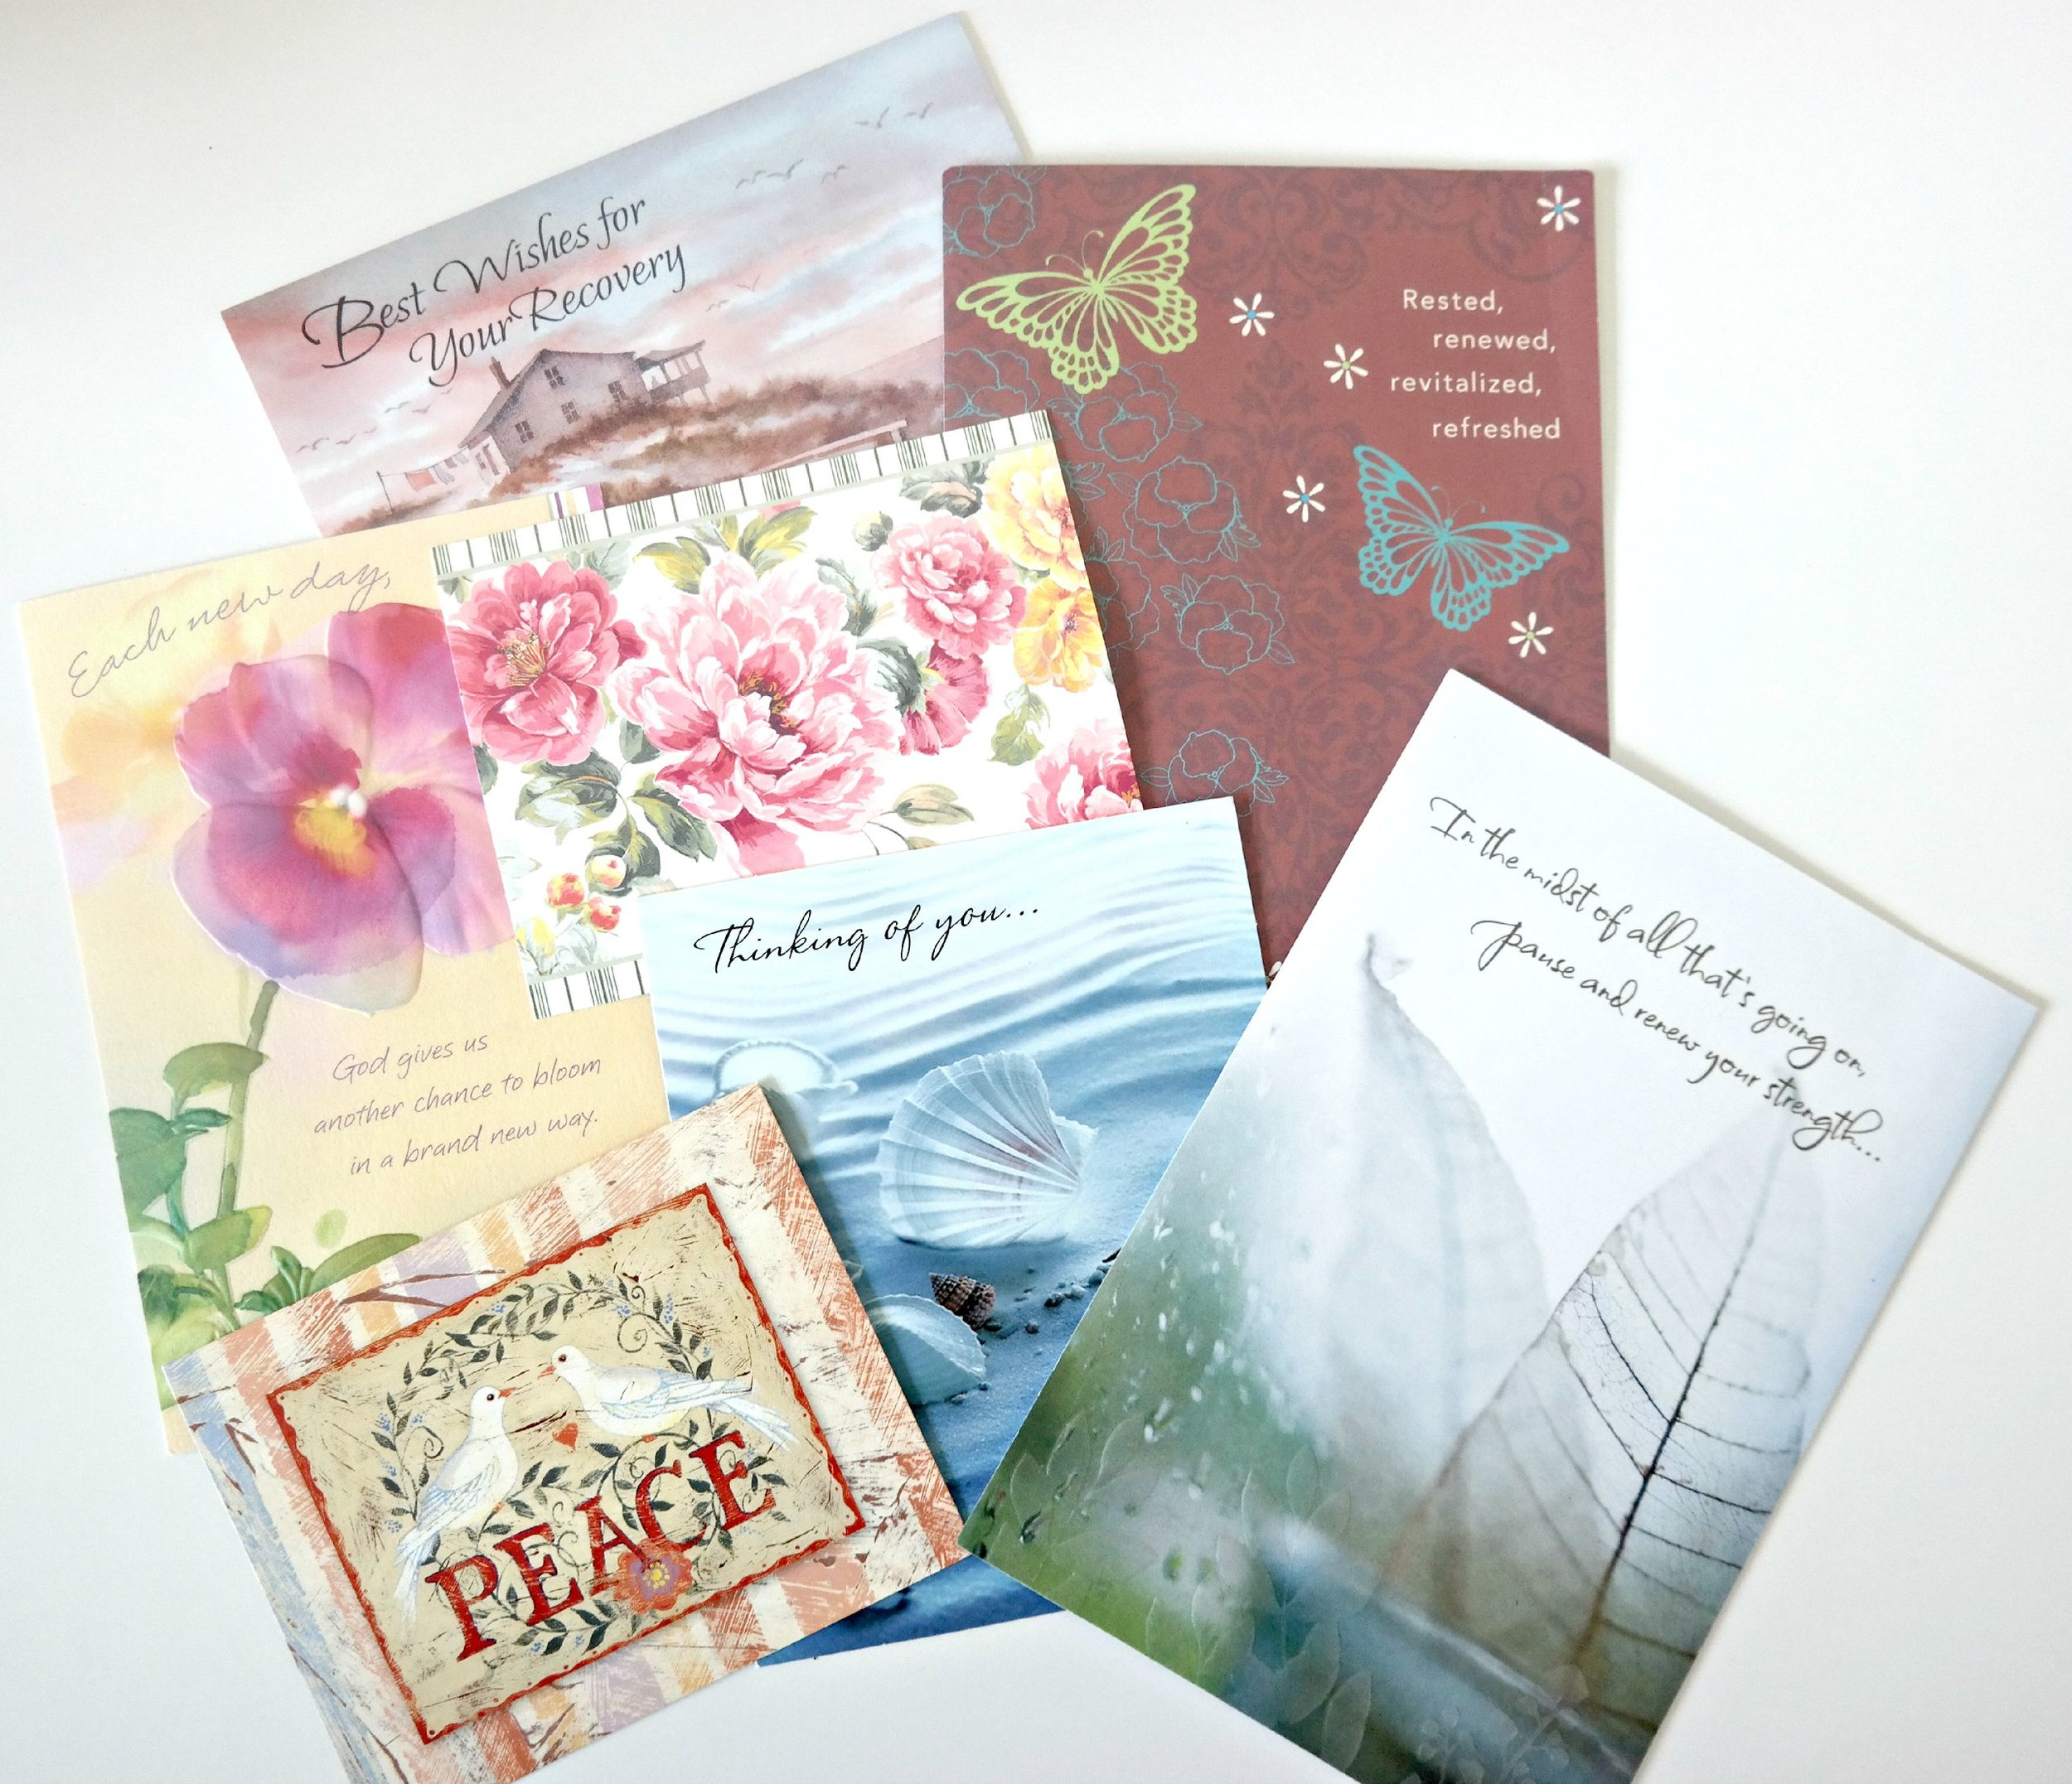 Cards that remind us someone is thinking of us in our time of need are the best!